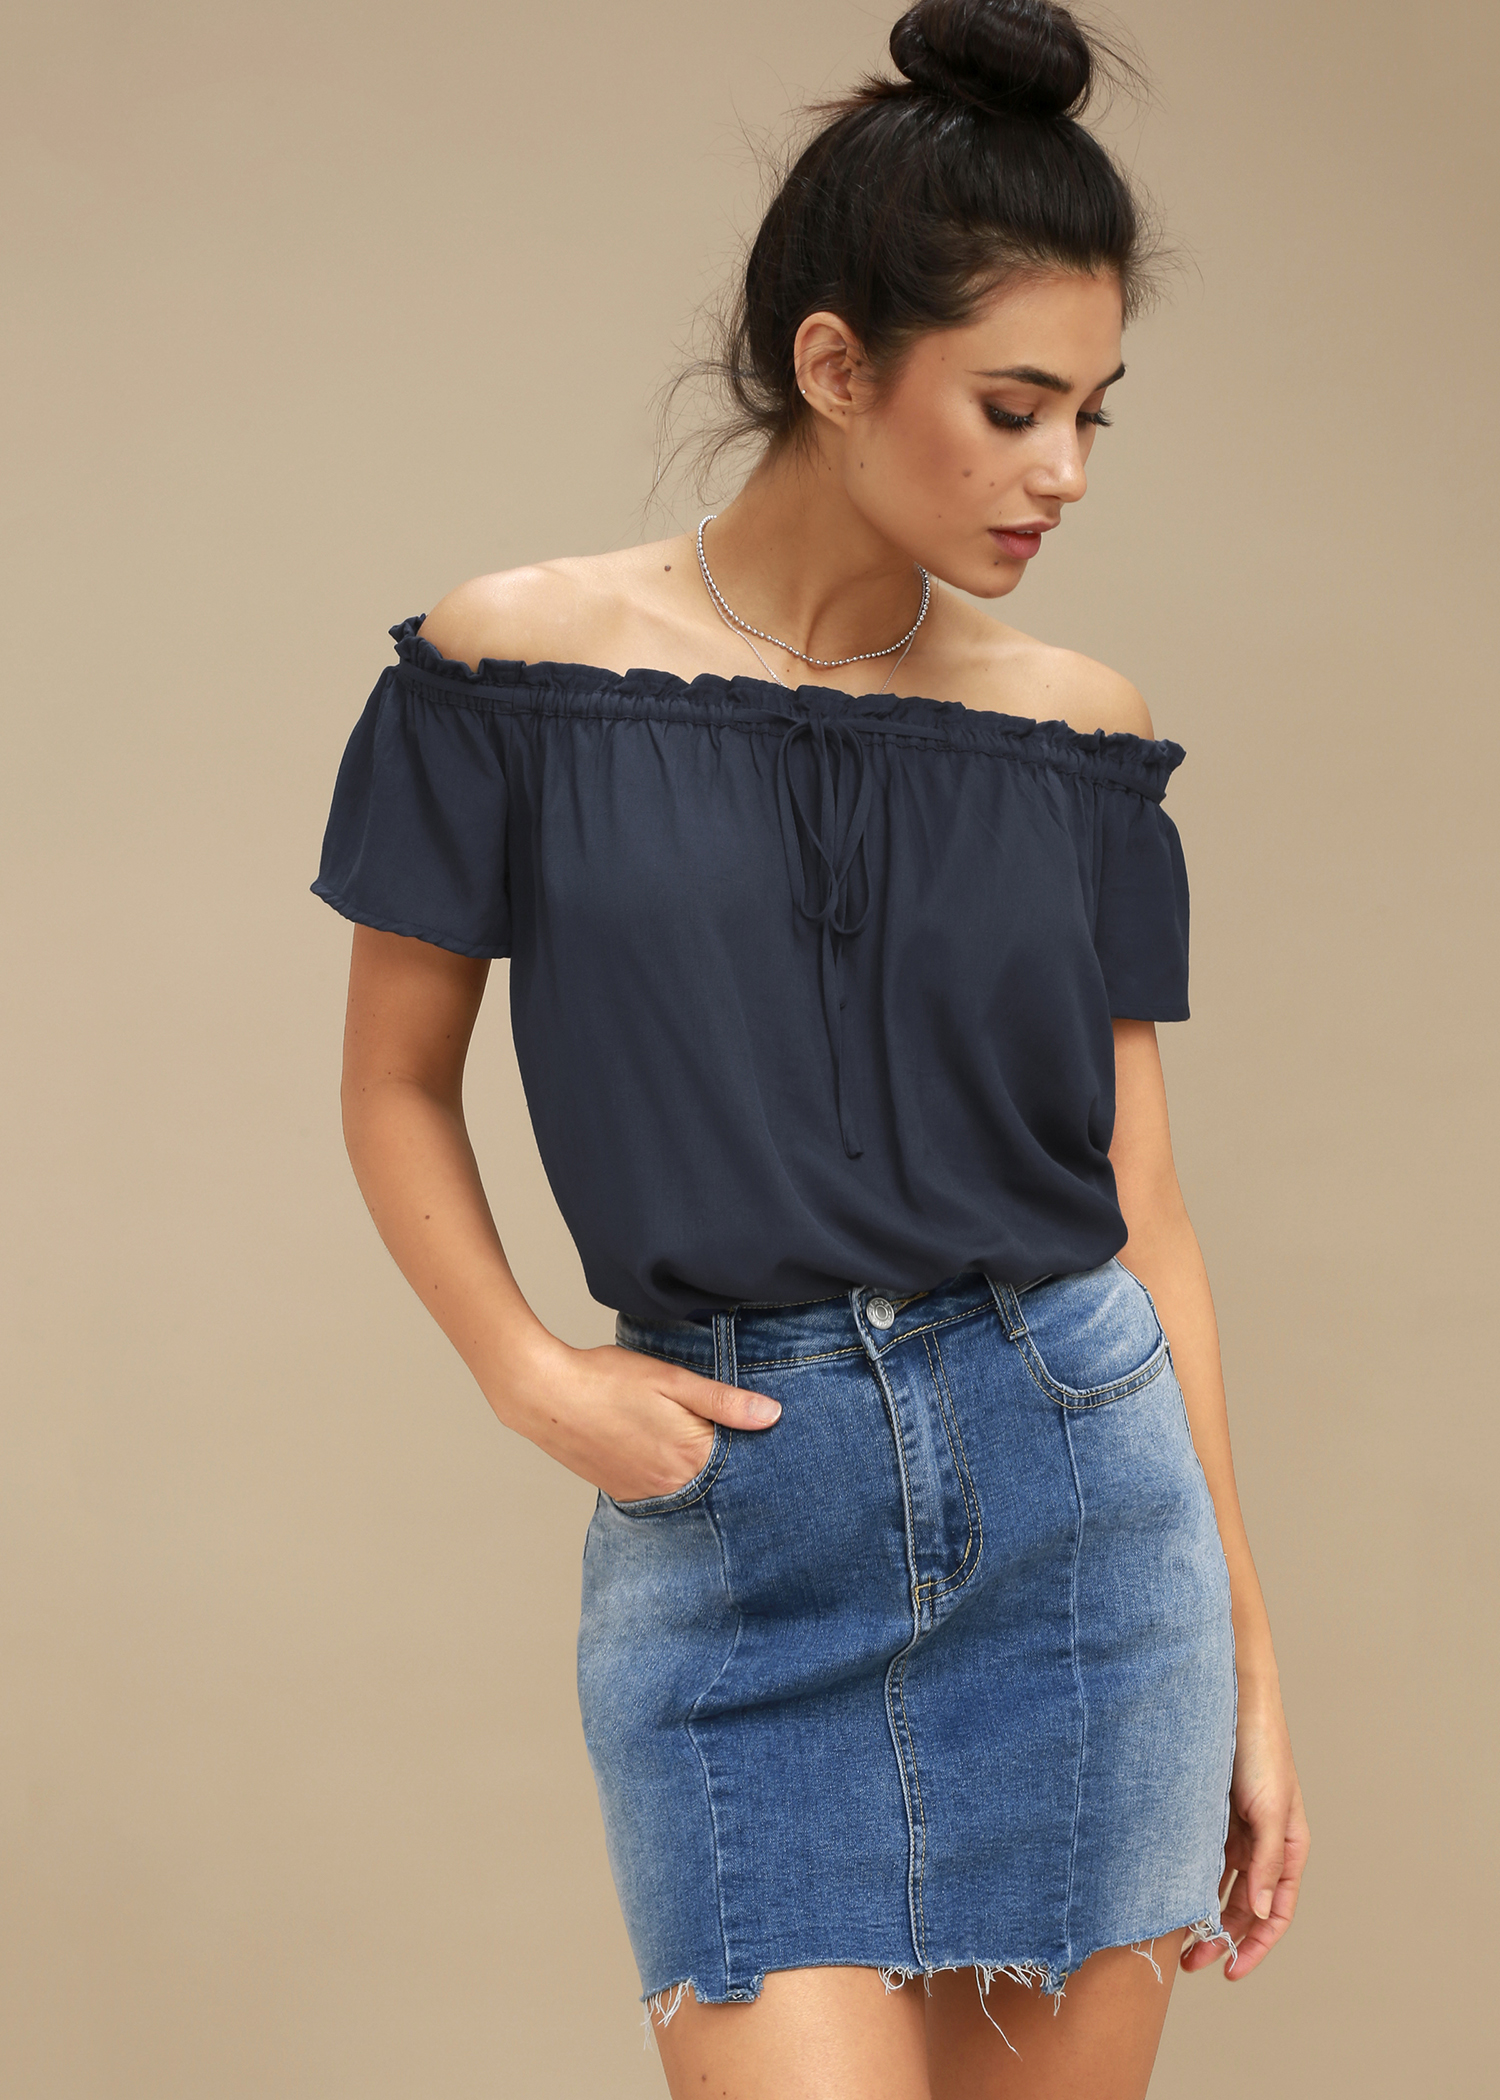 2e5a32b46a718 16 Off-the-Shoulder Tops To Shop When You Have Big Boobs - HelloGiggles